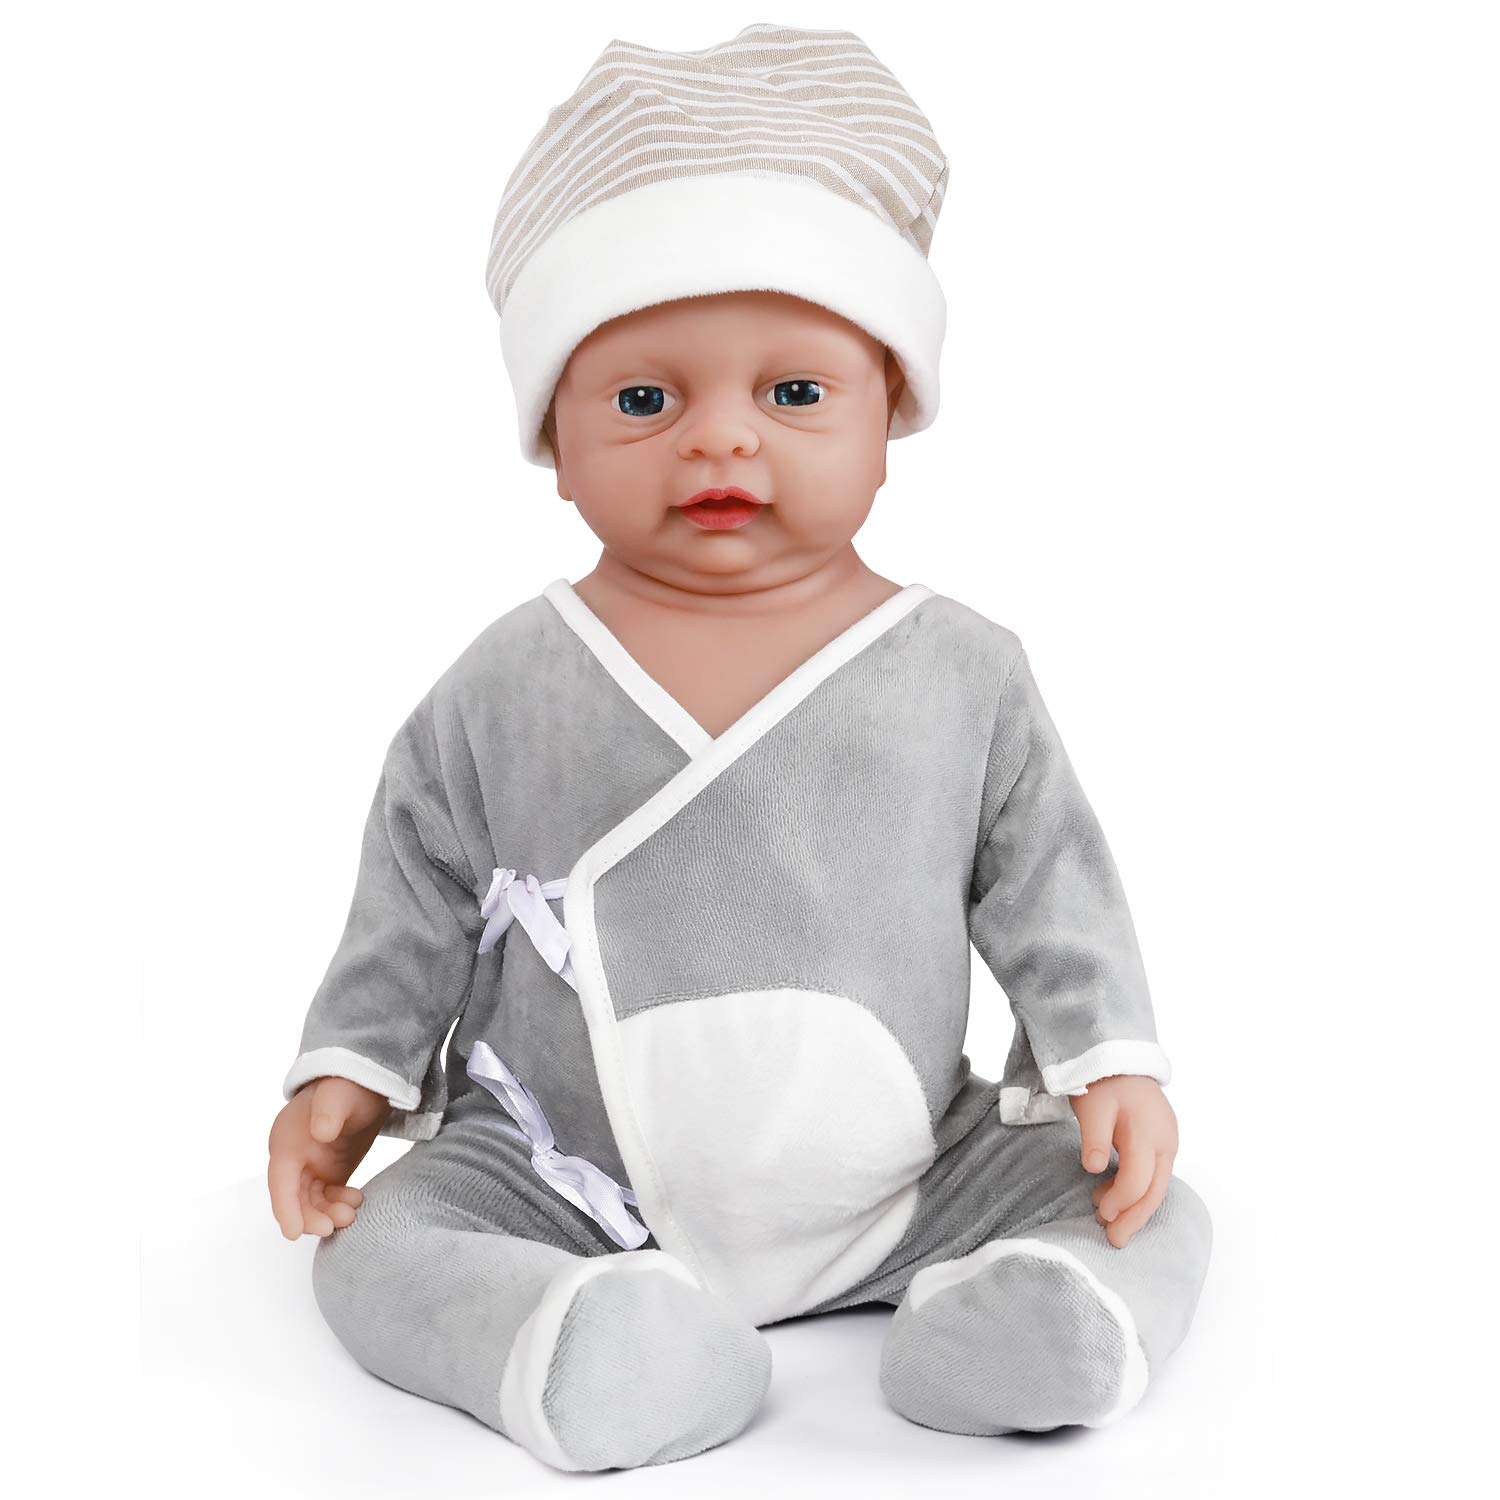 Vollence 18 Inch Realistic Reborn Baby Doll Pvc Free Real Full Body Silicone Baby Dolls Handmade Lifelike Soft Silicone Baby Doll Clothes Boy Buy Online In Cayman Islands At Cayman Desertcart Com Productid 66646705